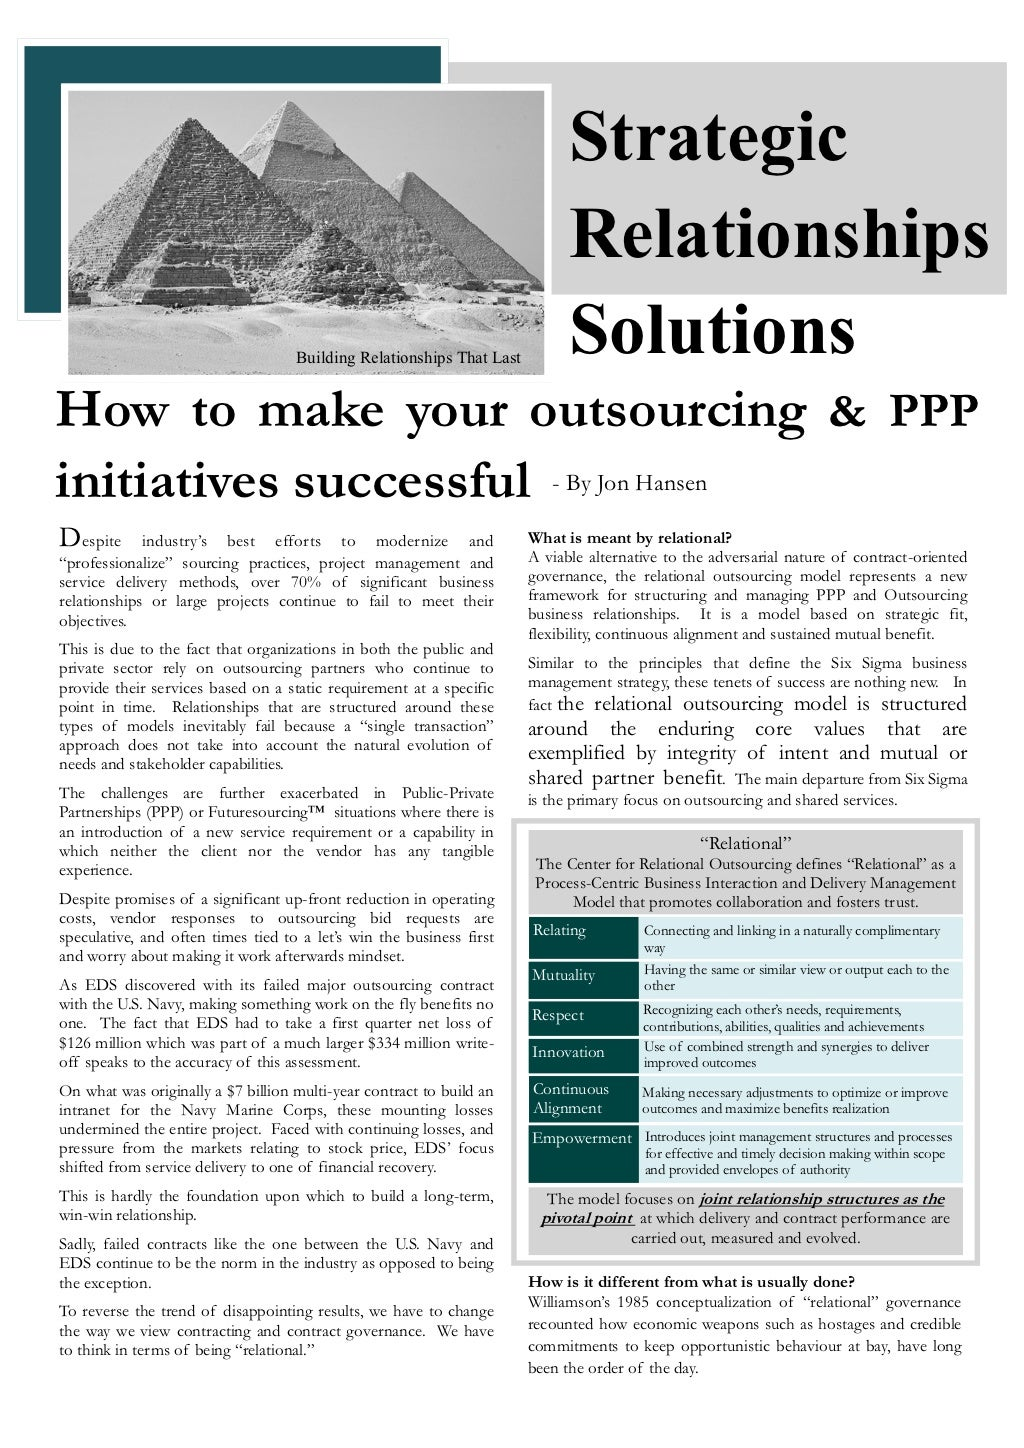 How To Make Your Outsourcing and PPP Initiatives Work